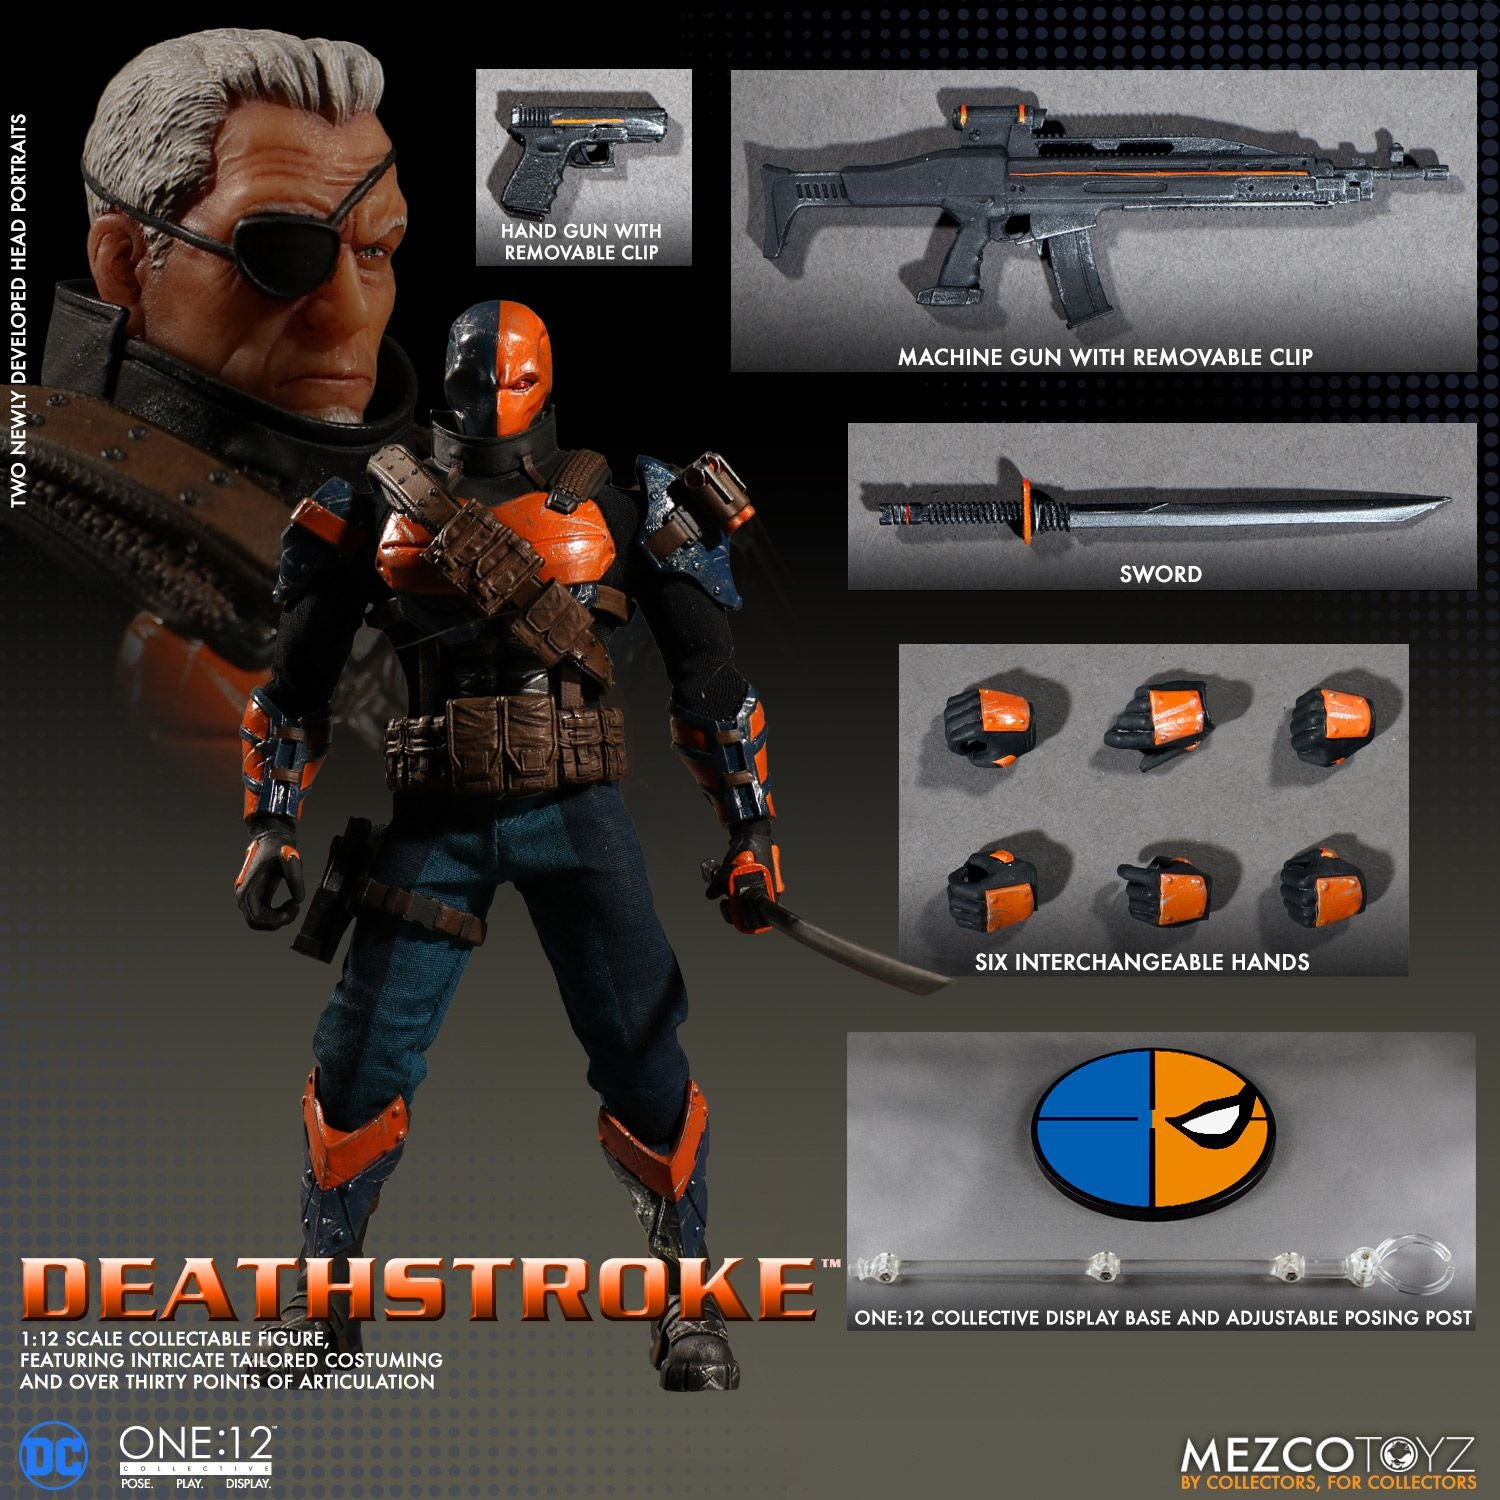 Mezco - One:12 Collective - Deathstroke - Marvelous Toys - 9